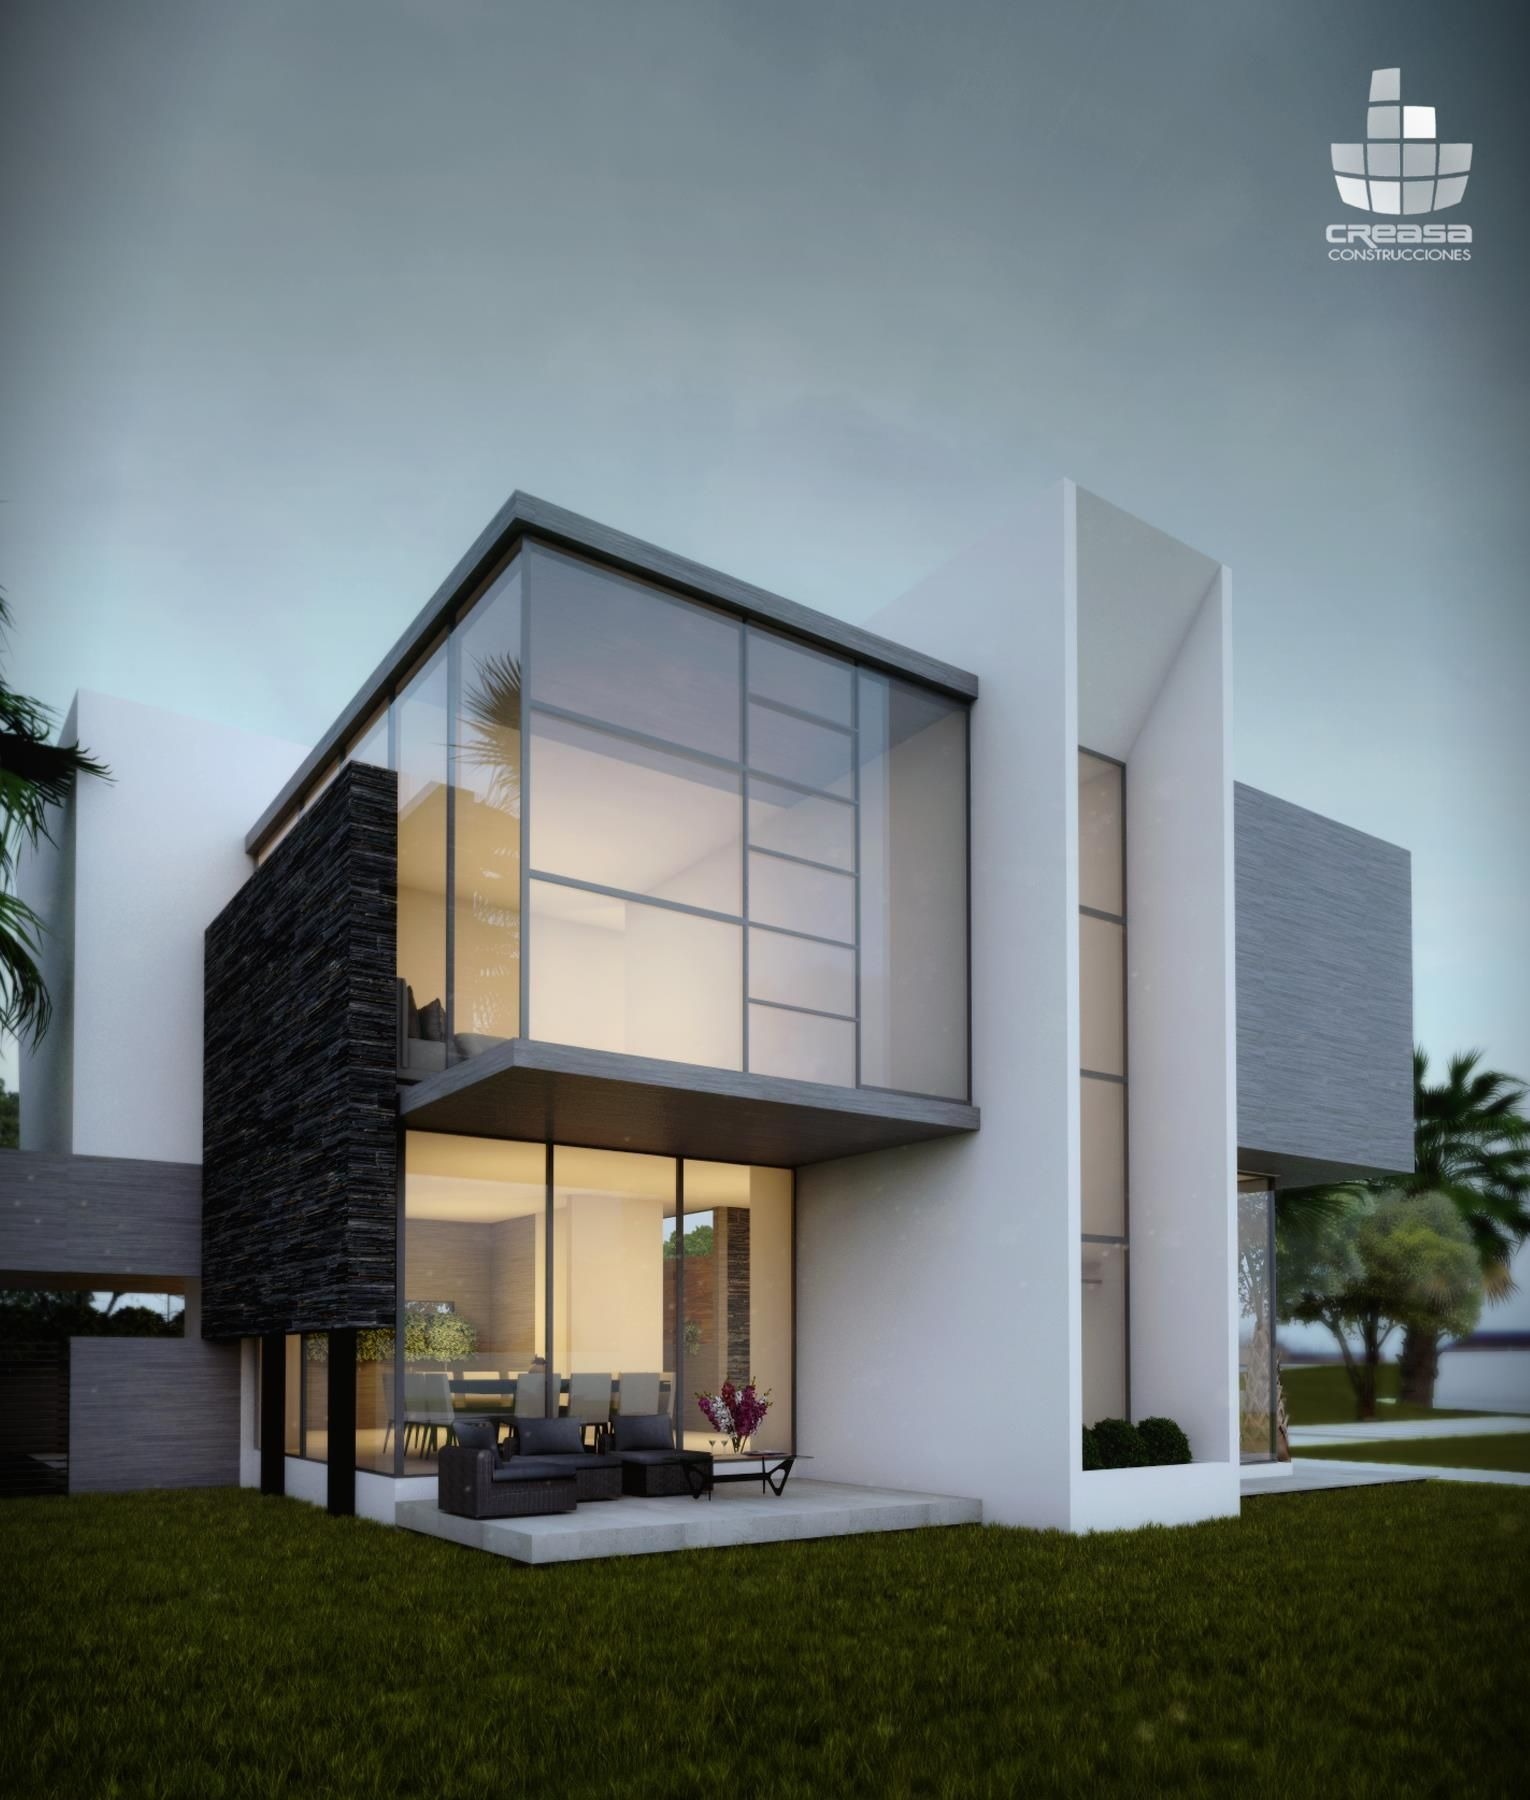 Creasa modern architecture pinterest villas house for Modern pole builders